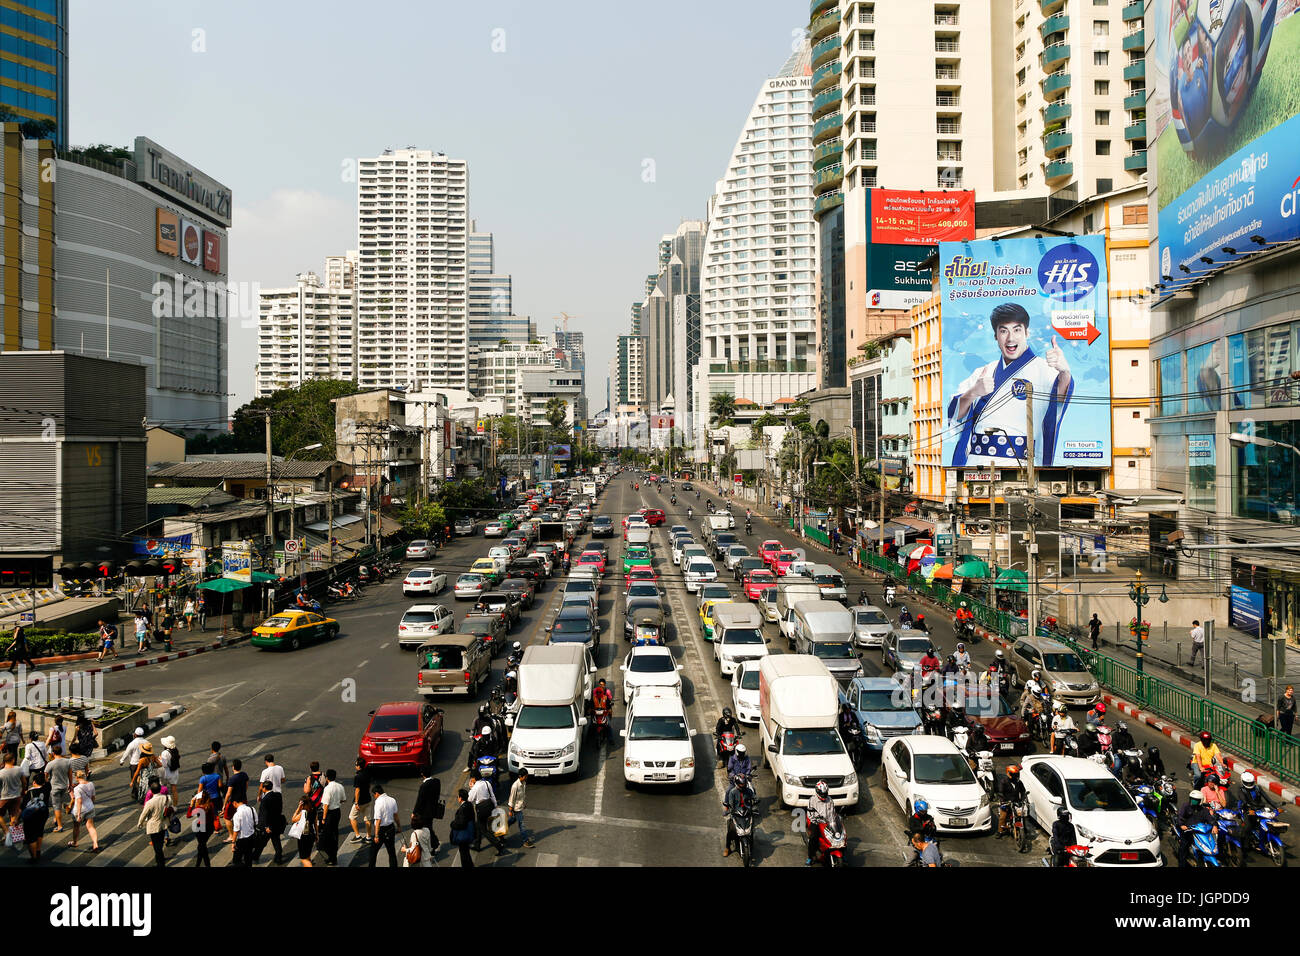 Bangkok, Thailand - February 13, 2015: Traffic congestion at the intersection of Asoke and Sukhumvit Rd. in downtown - Stock Image